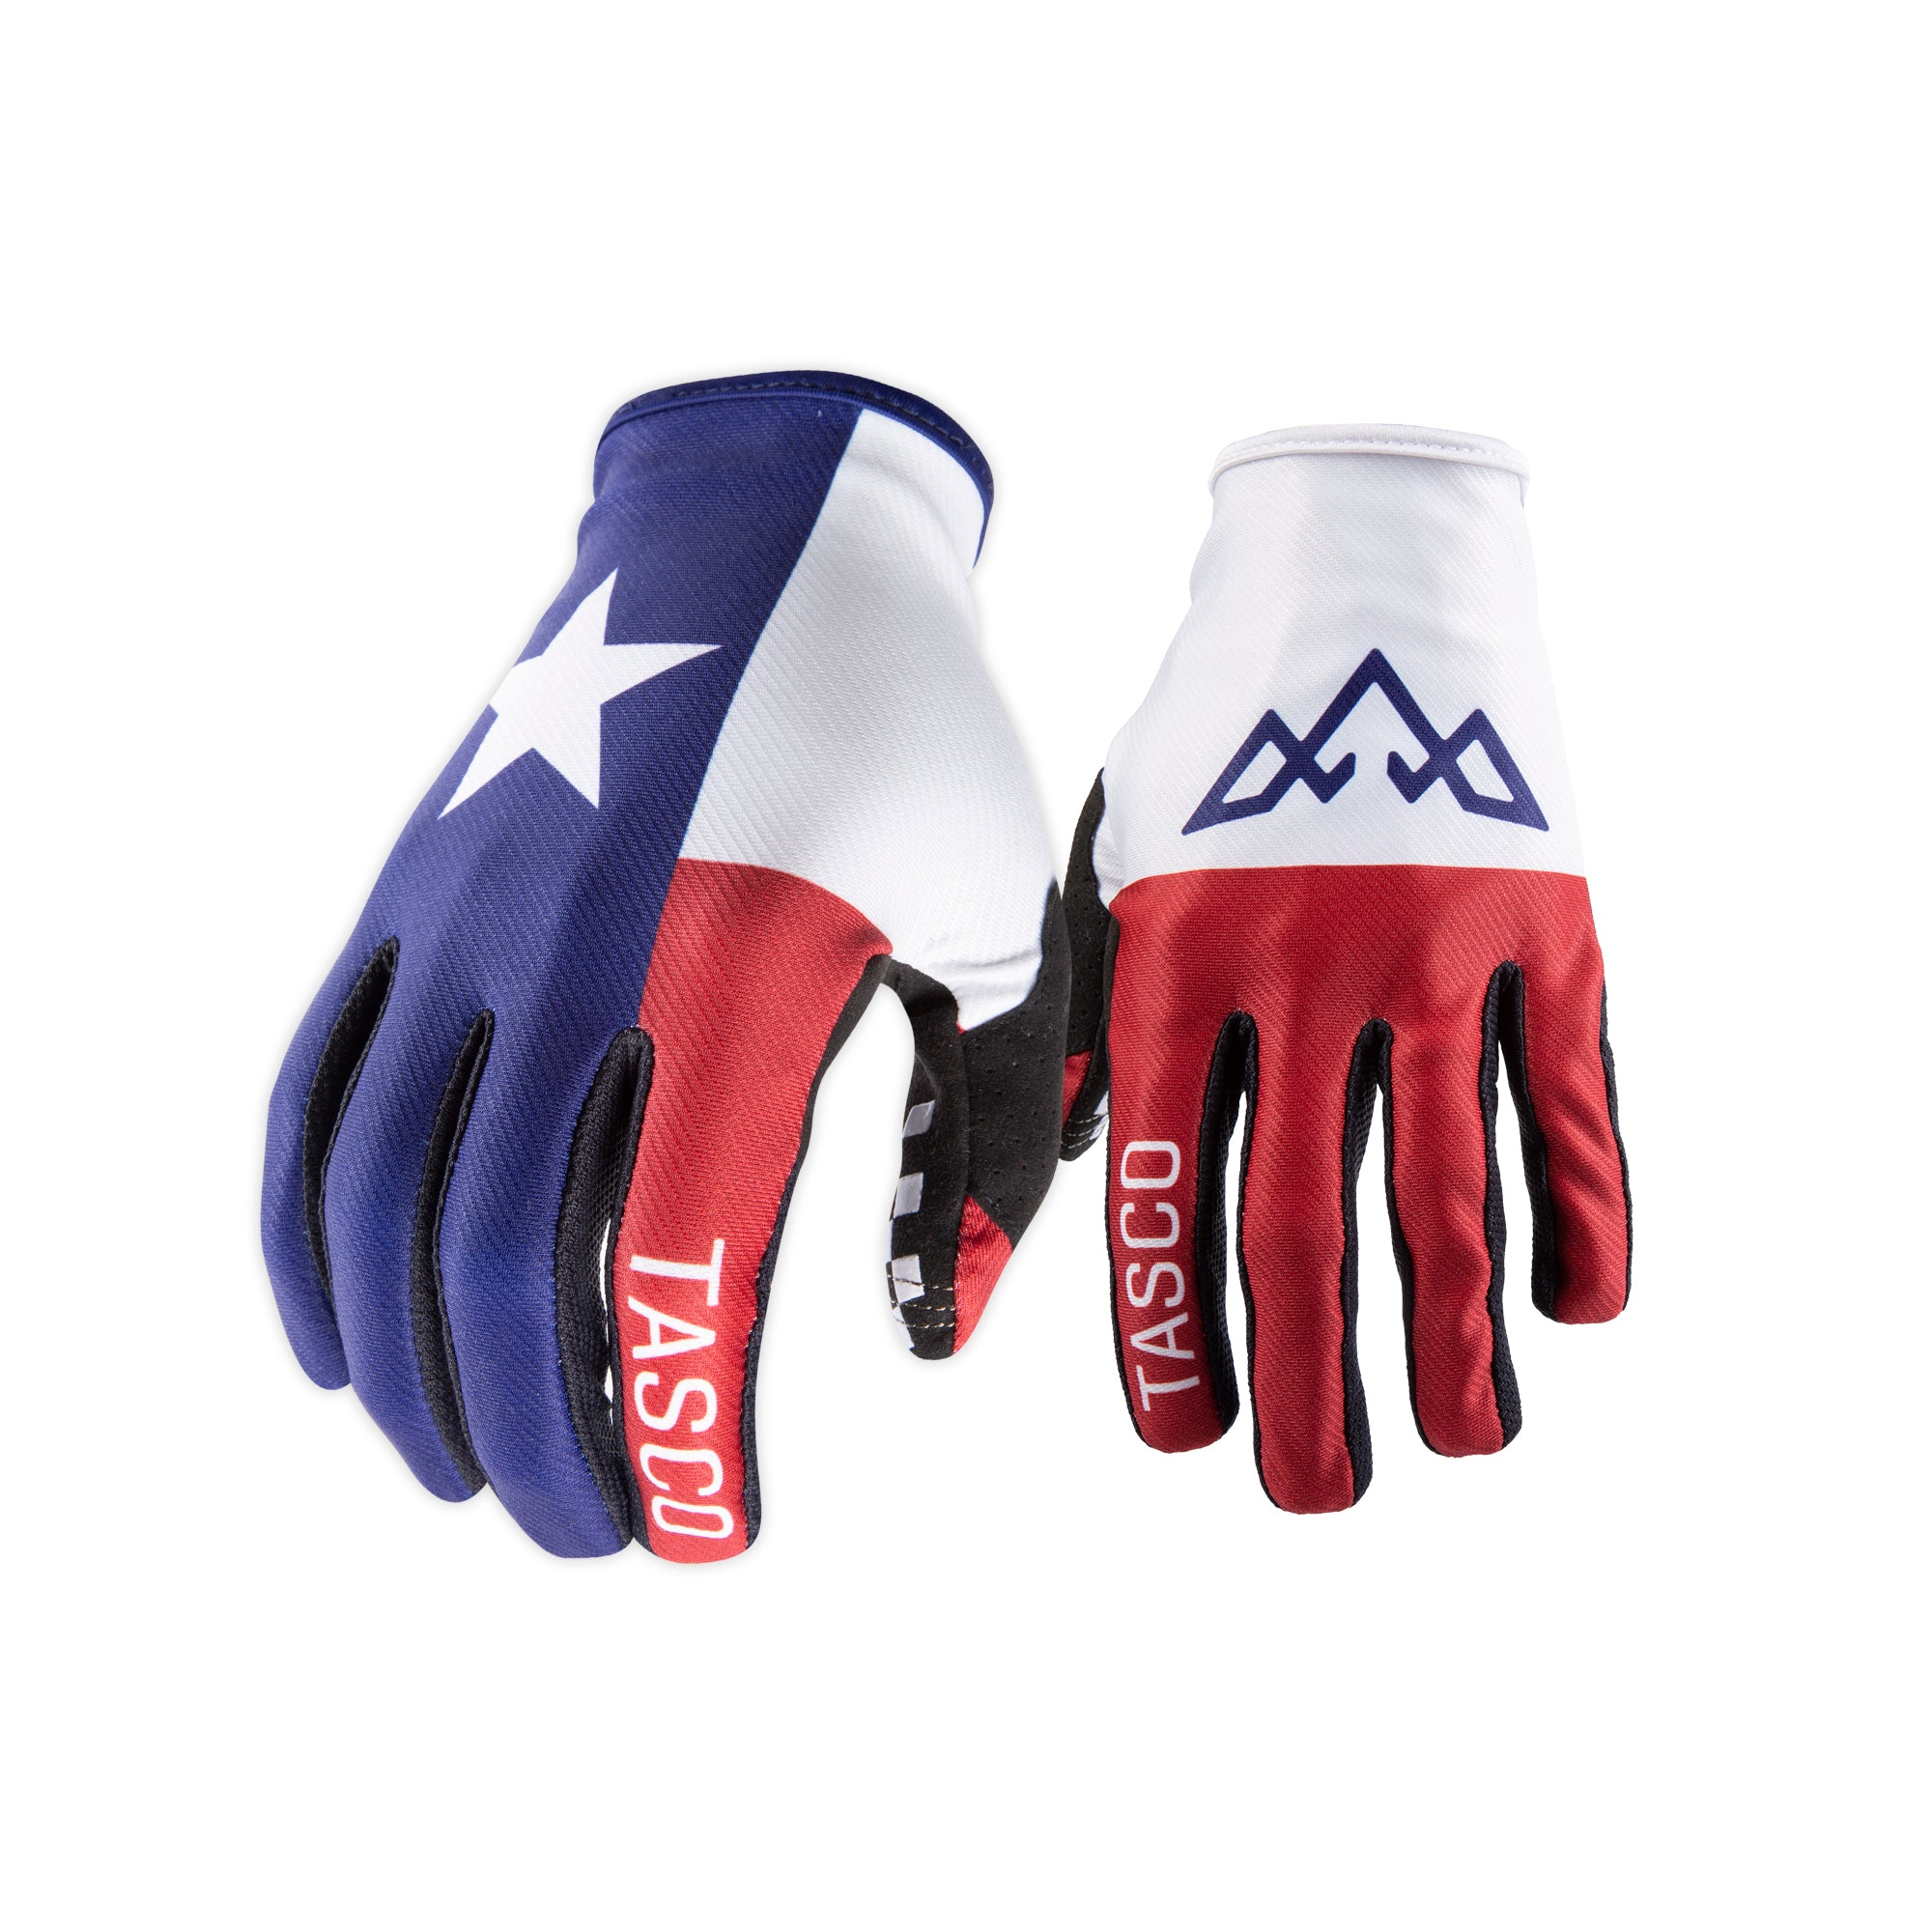 Lone Star Double Digits MTB Gloves - MTB Lifestyle | TASCO MTB